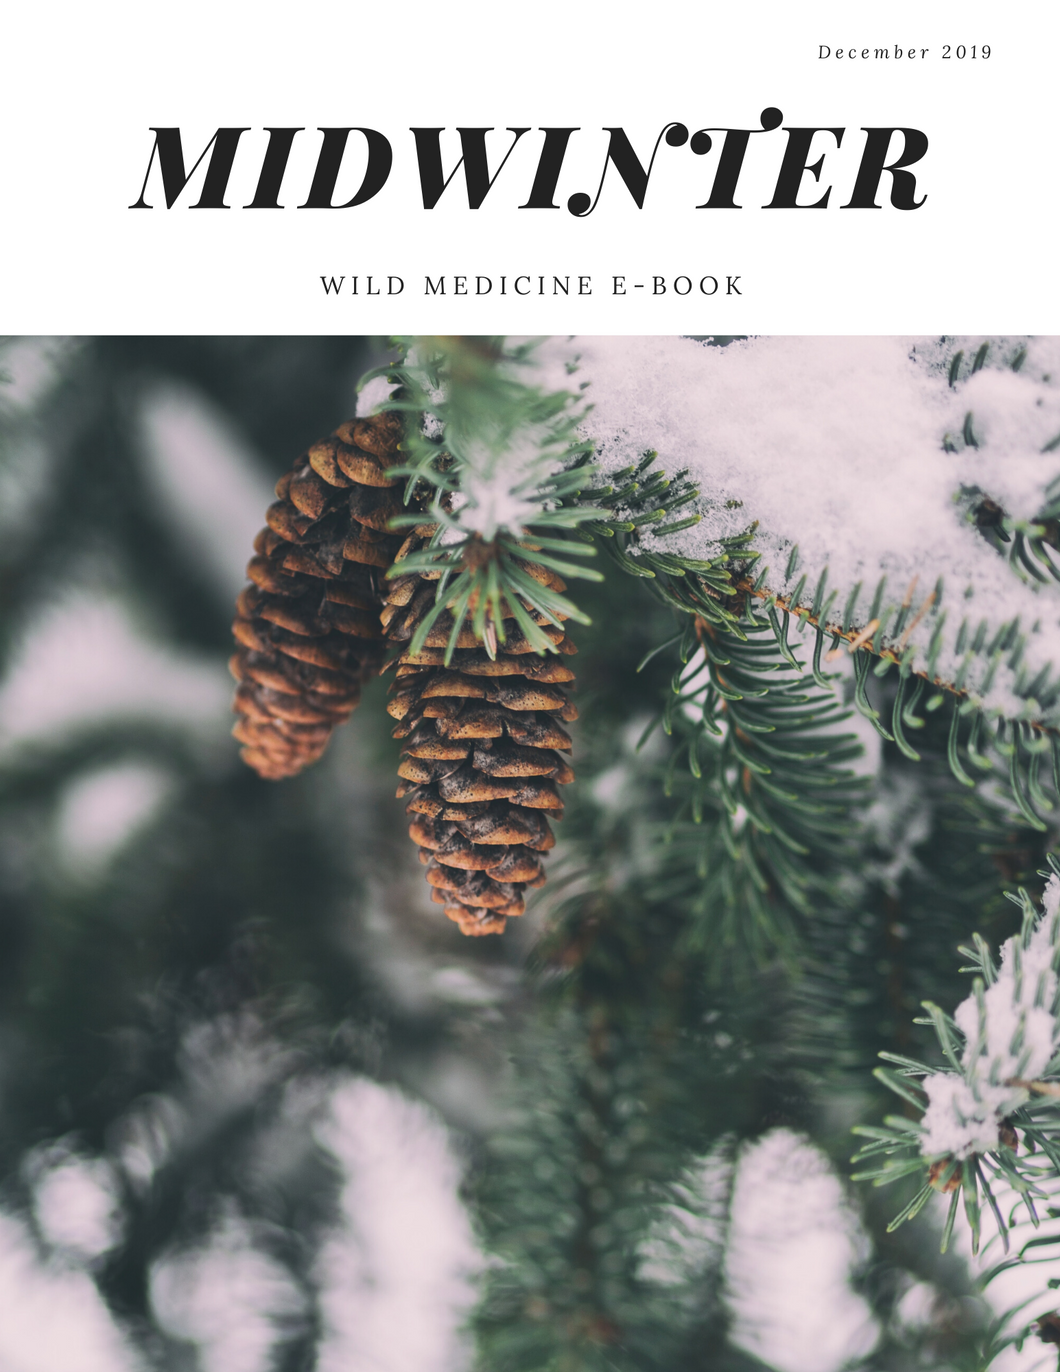 Midwinter Wild Medicine E-Book {Full Version}